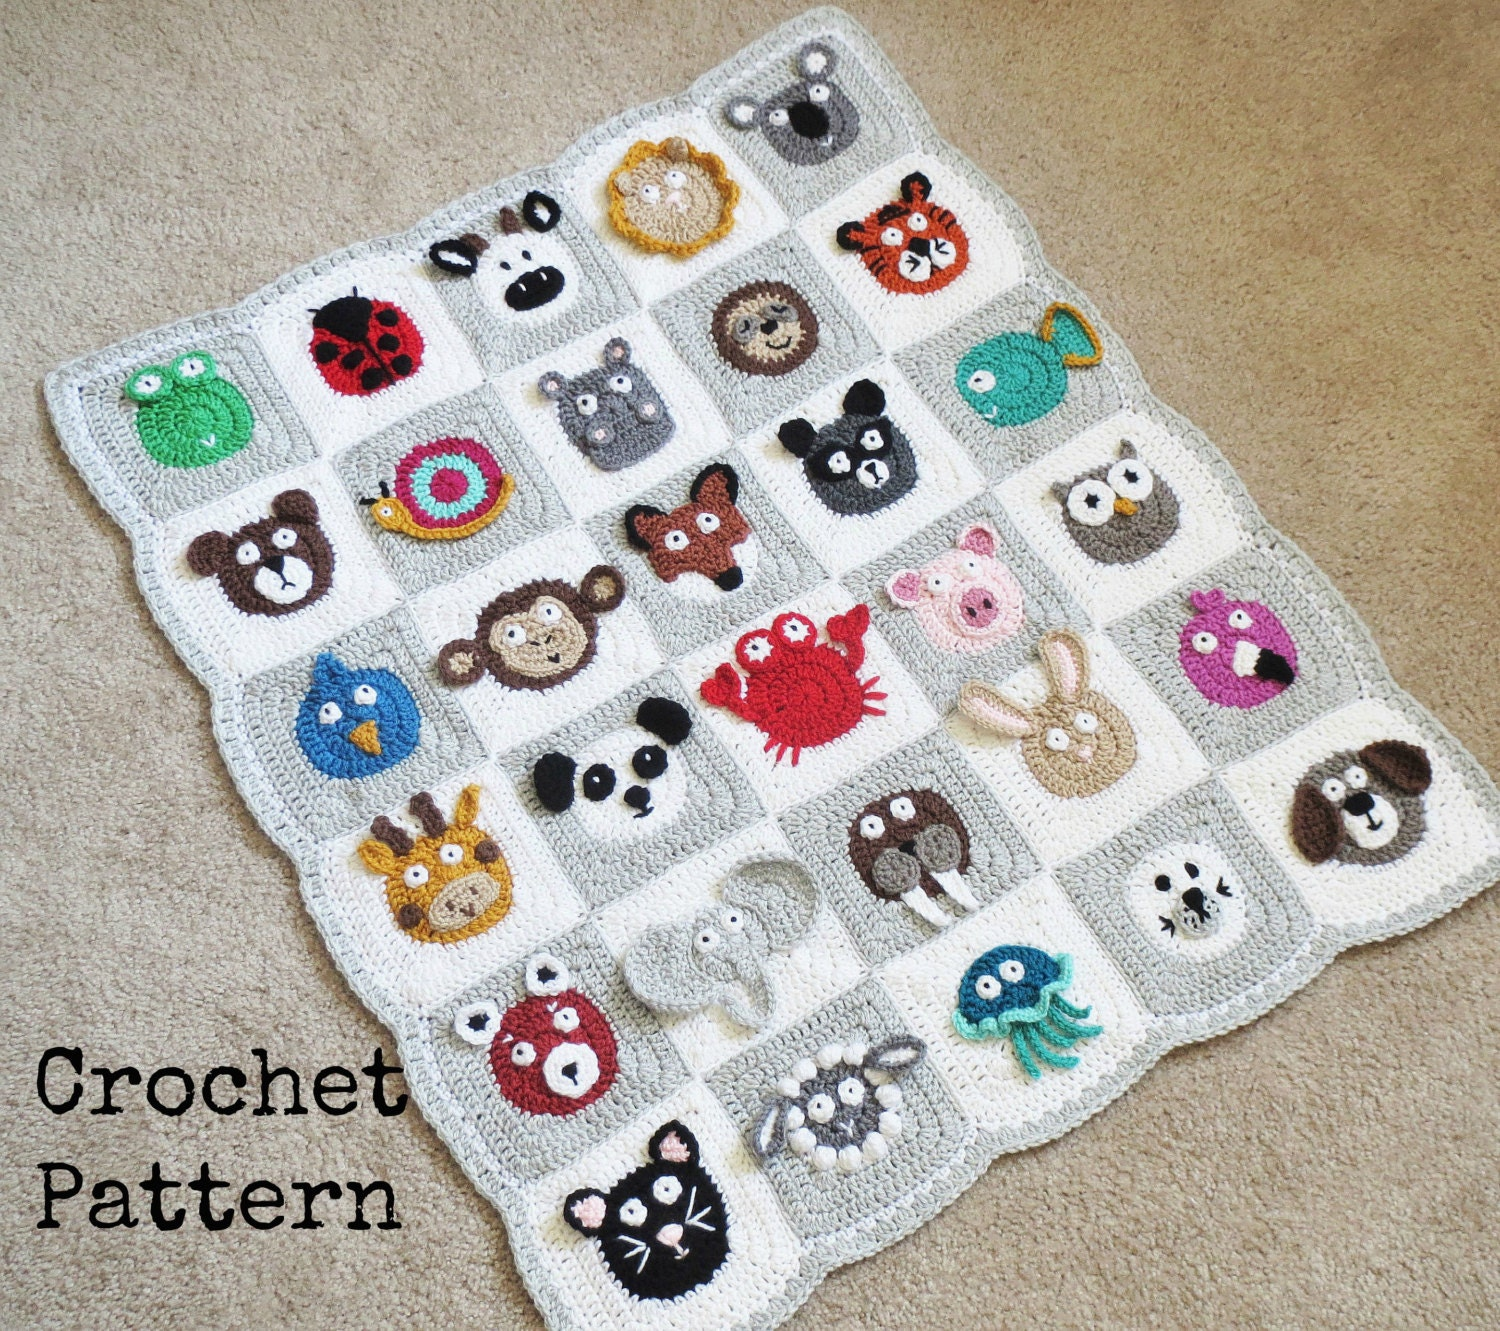 Crochet Baby Blanket Patterns With Animals : BABY BLANKET PATTERN Crochet Pattern Instant Download Pdf